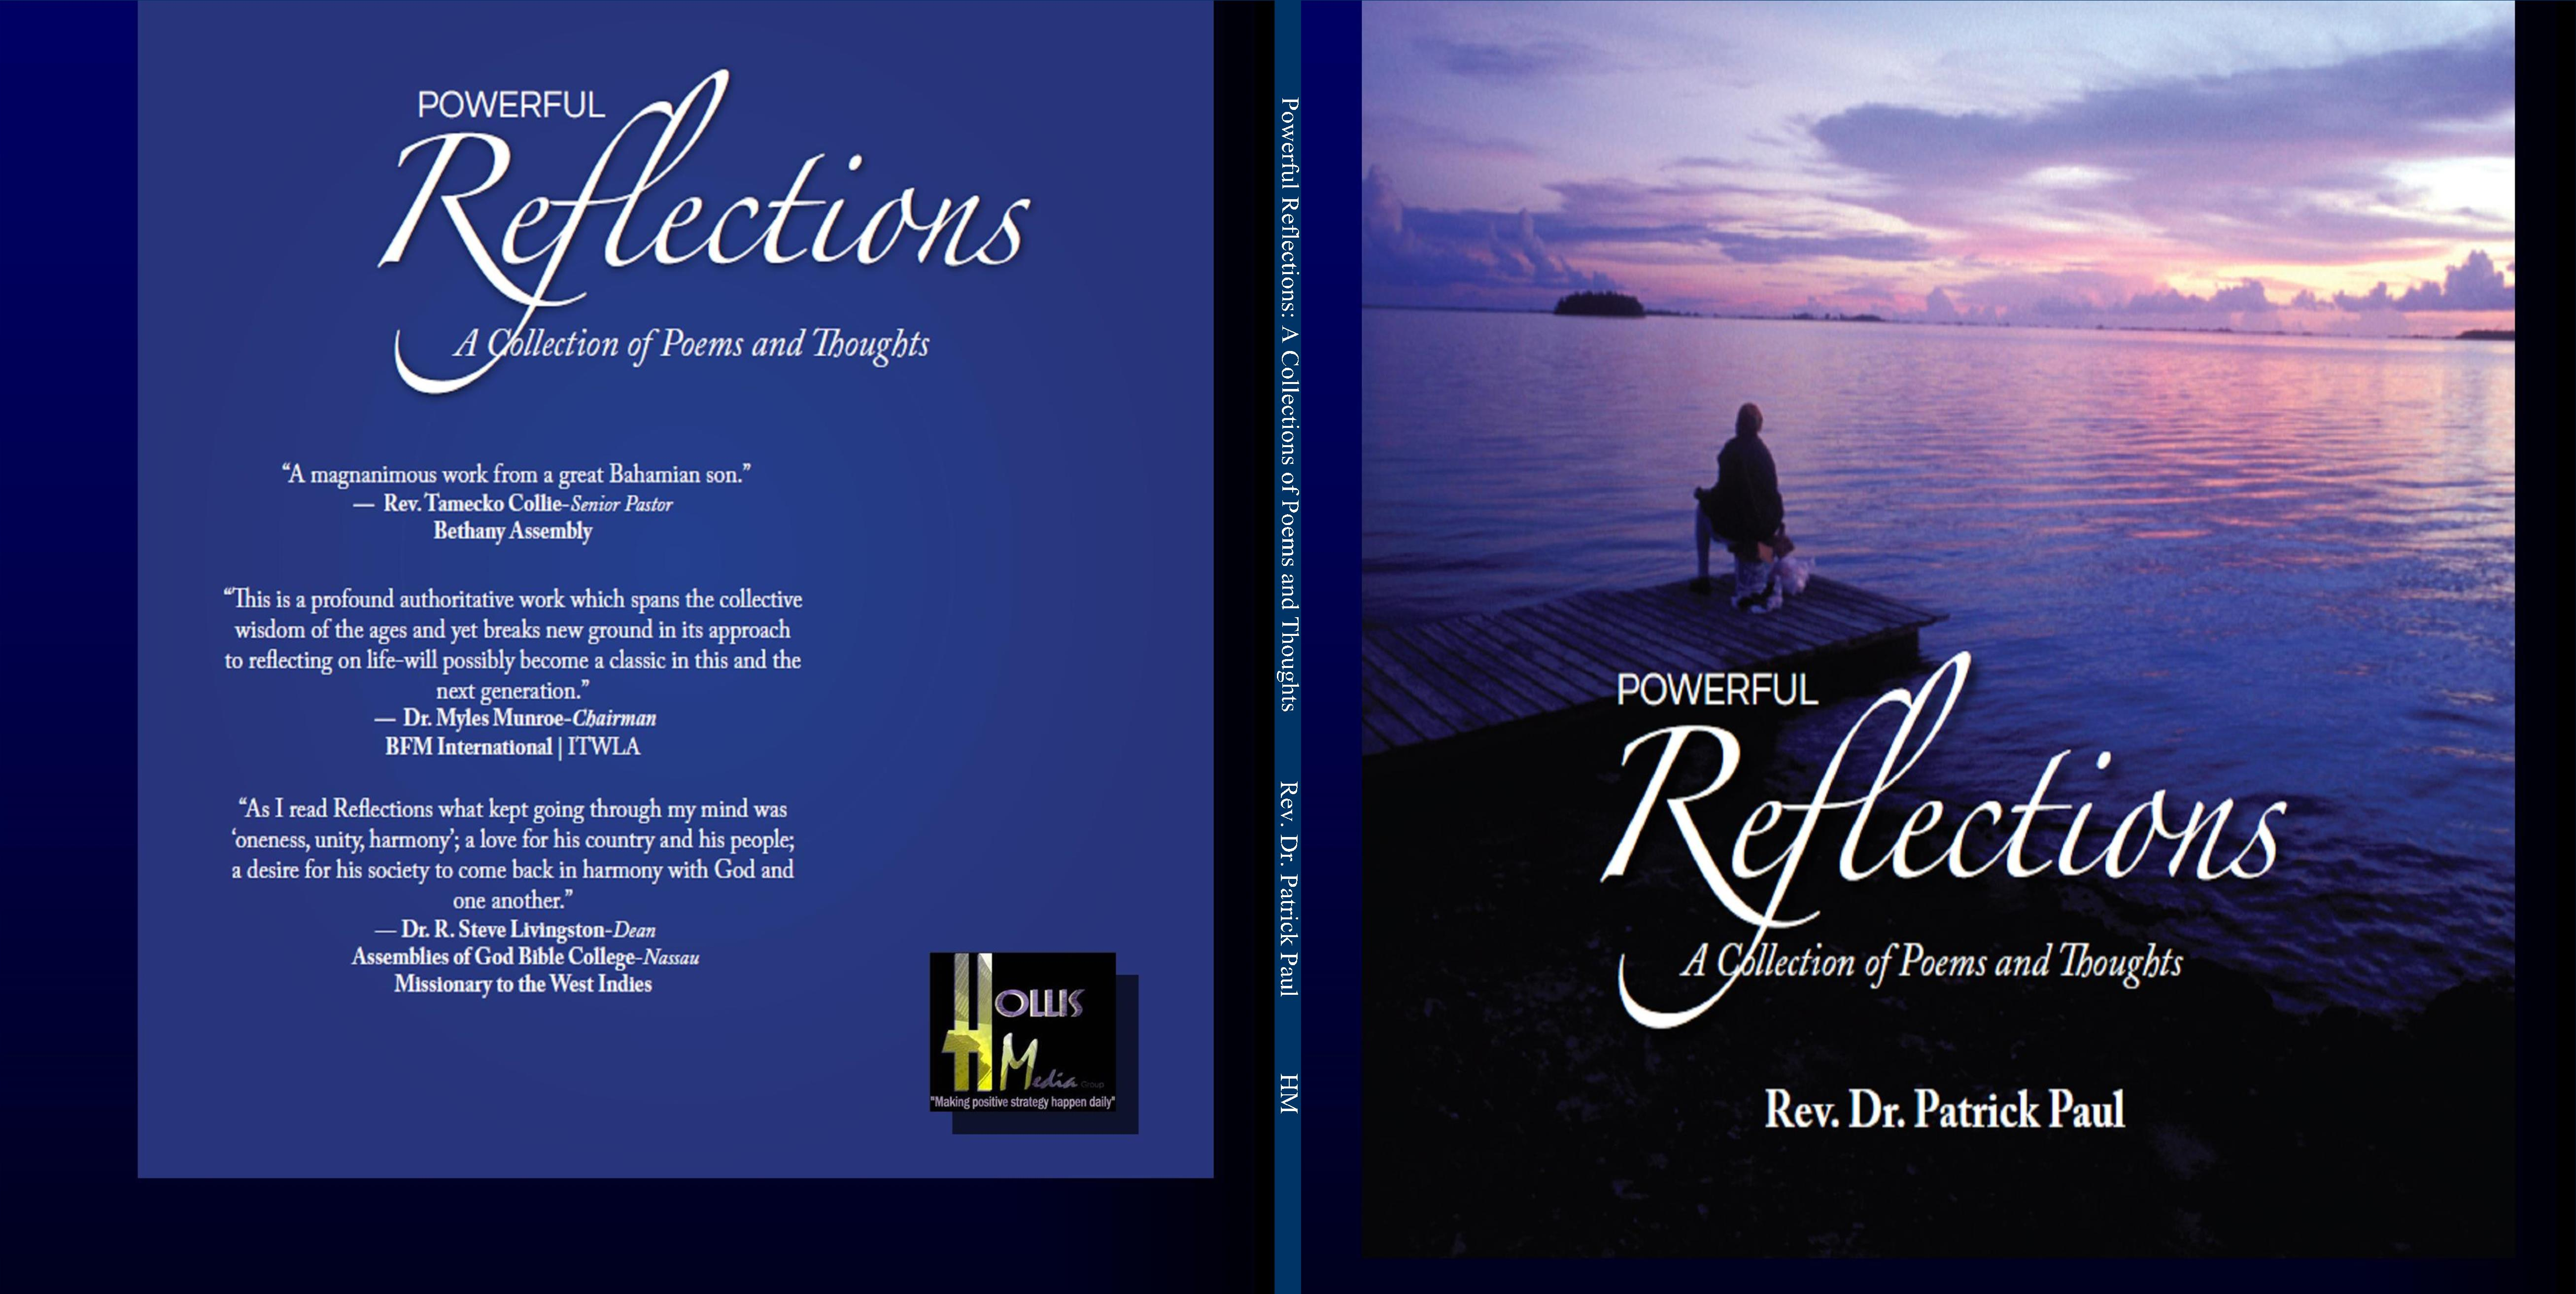 Powerful Reflections: A Collections of Poems and Thoughts cover image